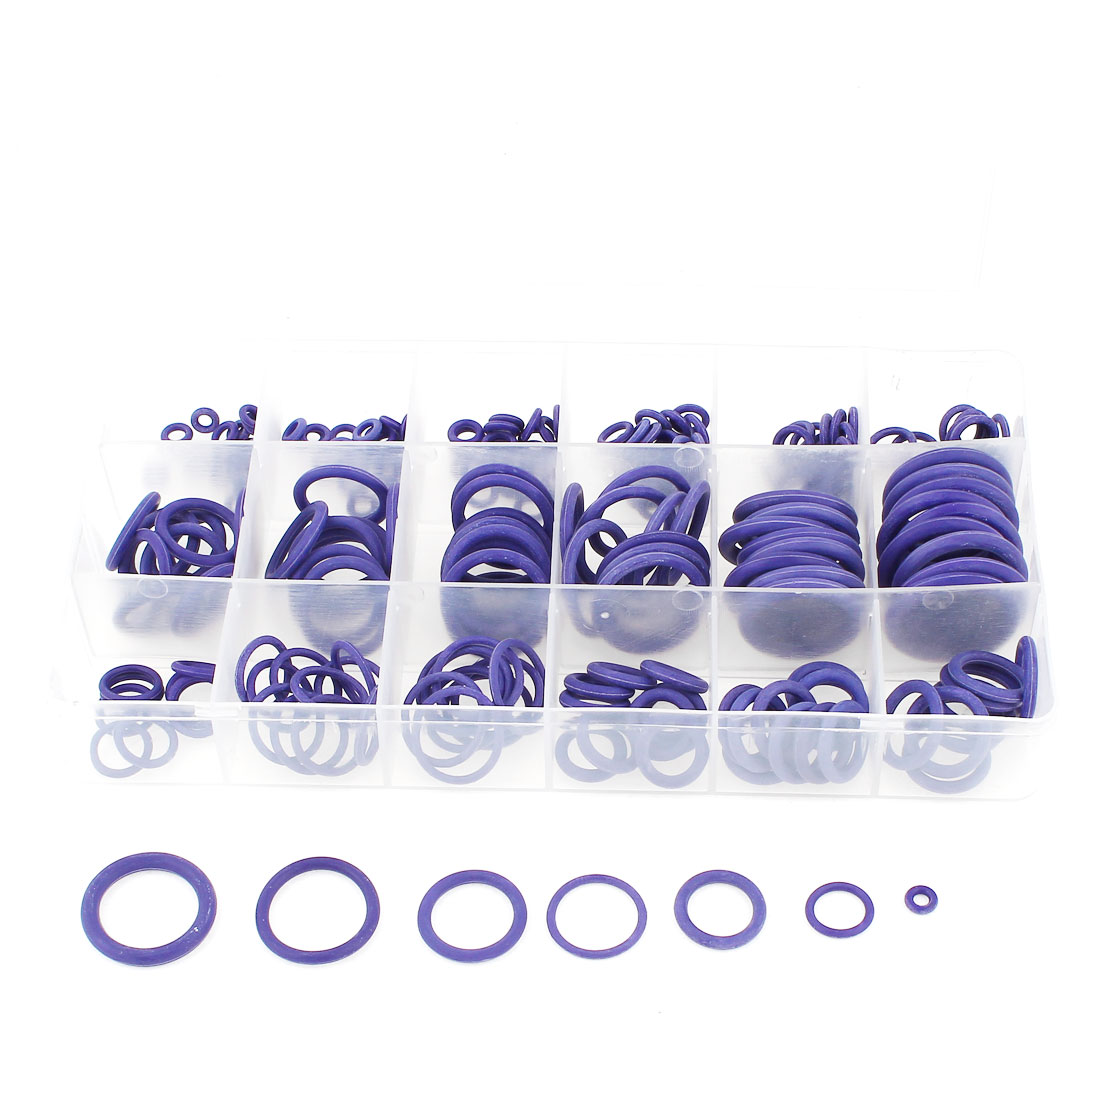 238 Pcs 18 Sizes O-ring Oil Seal Sealing Ring Gaskets Purple